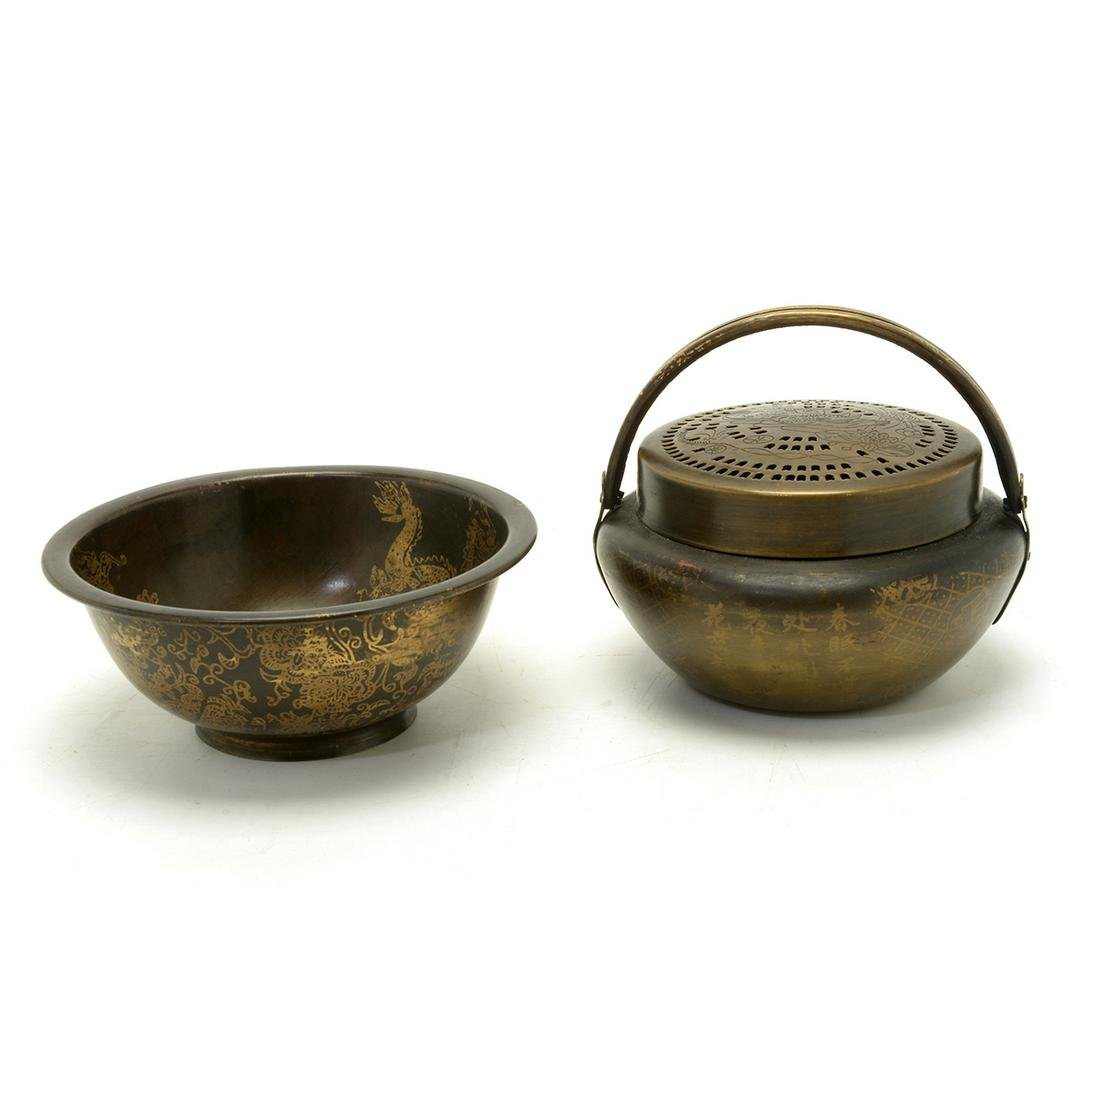 Hand Warmer and a Guang Xu Period Bowl